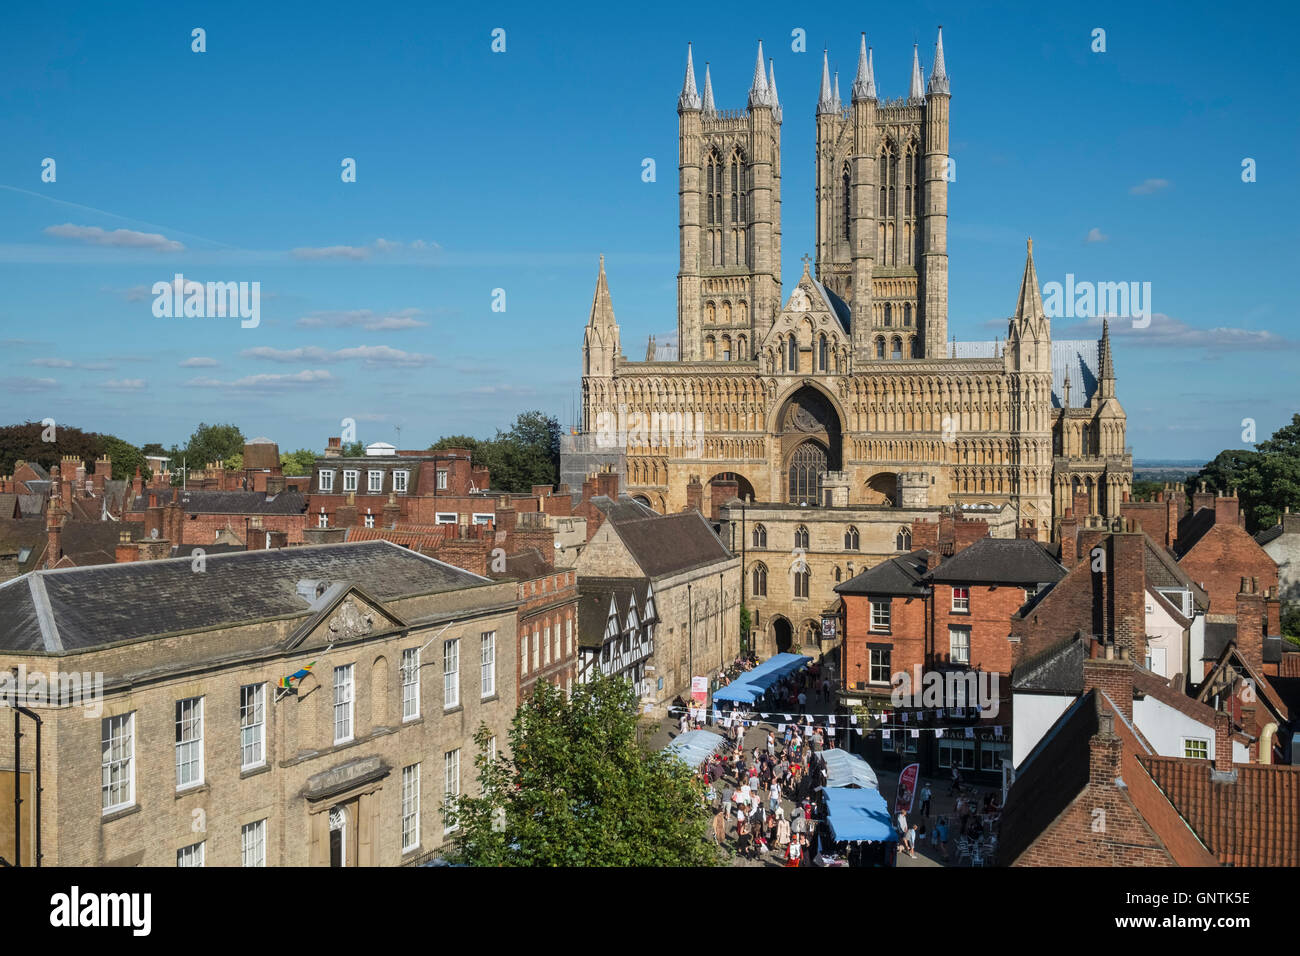 The gothic architecture of Lincoln Cathedral in the historic City of Lincoln, Lincolnshire, East Midlands, UK Stock Photo